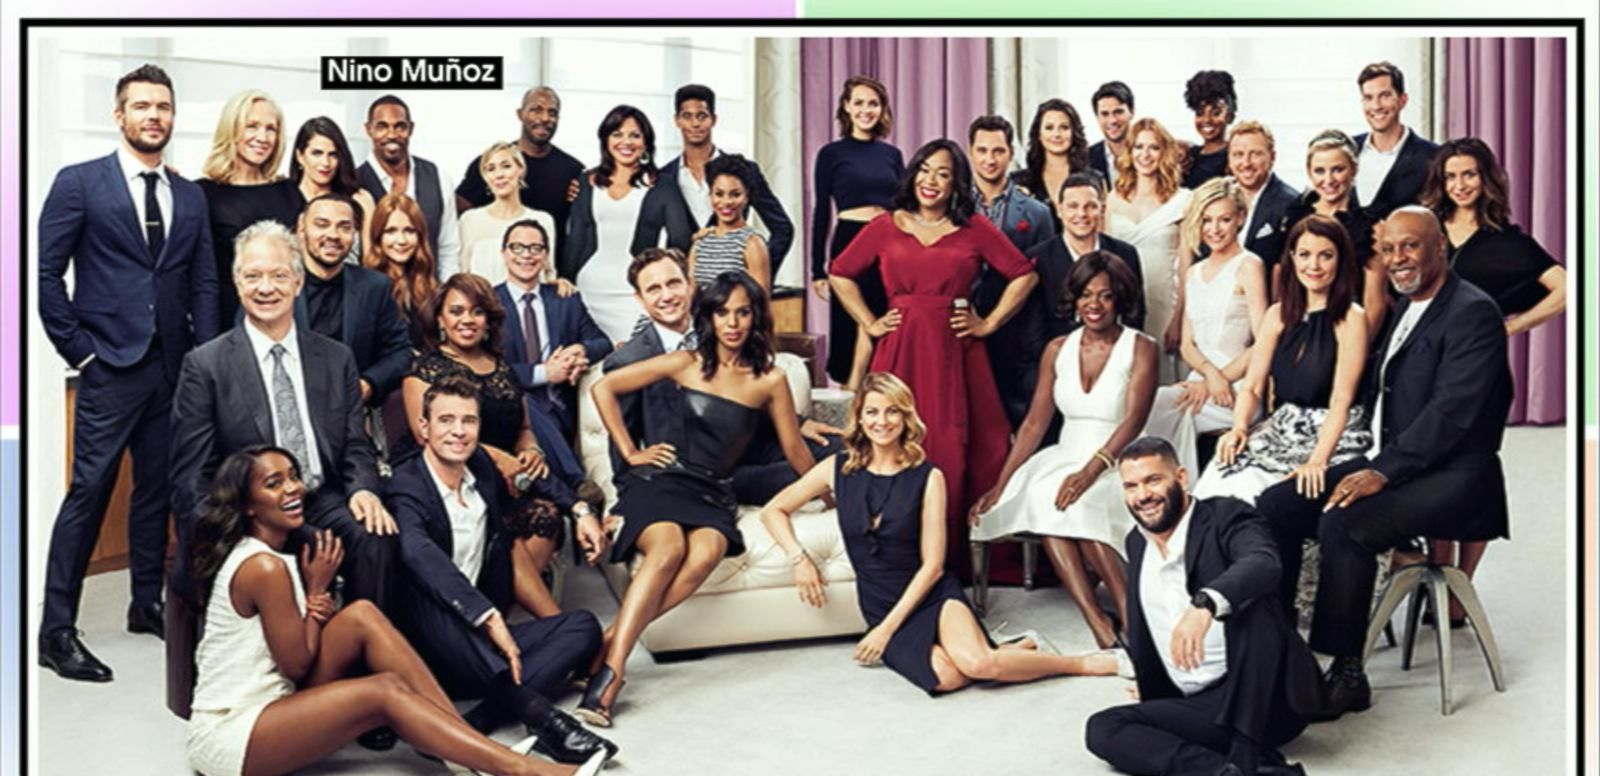 VIDEO: Shondaland Stars Pose for Epic Group Photo